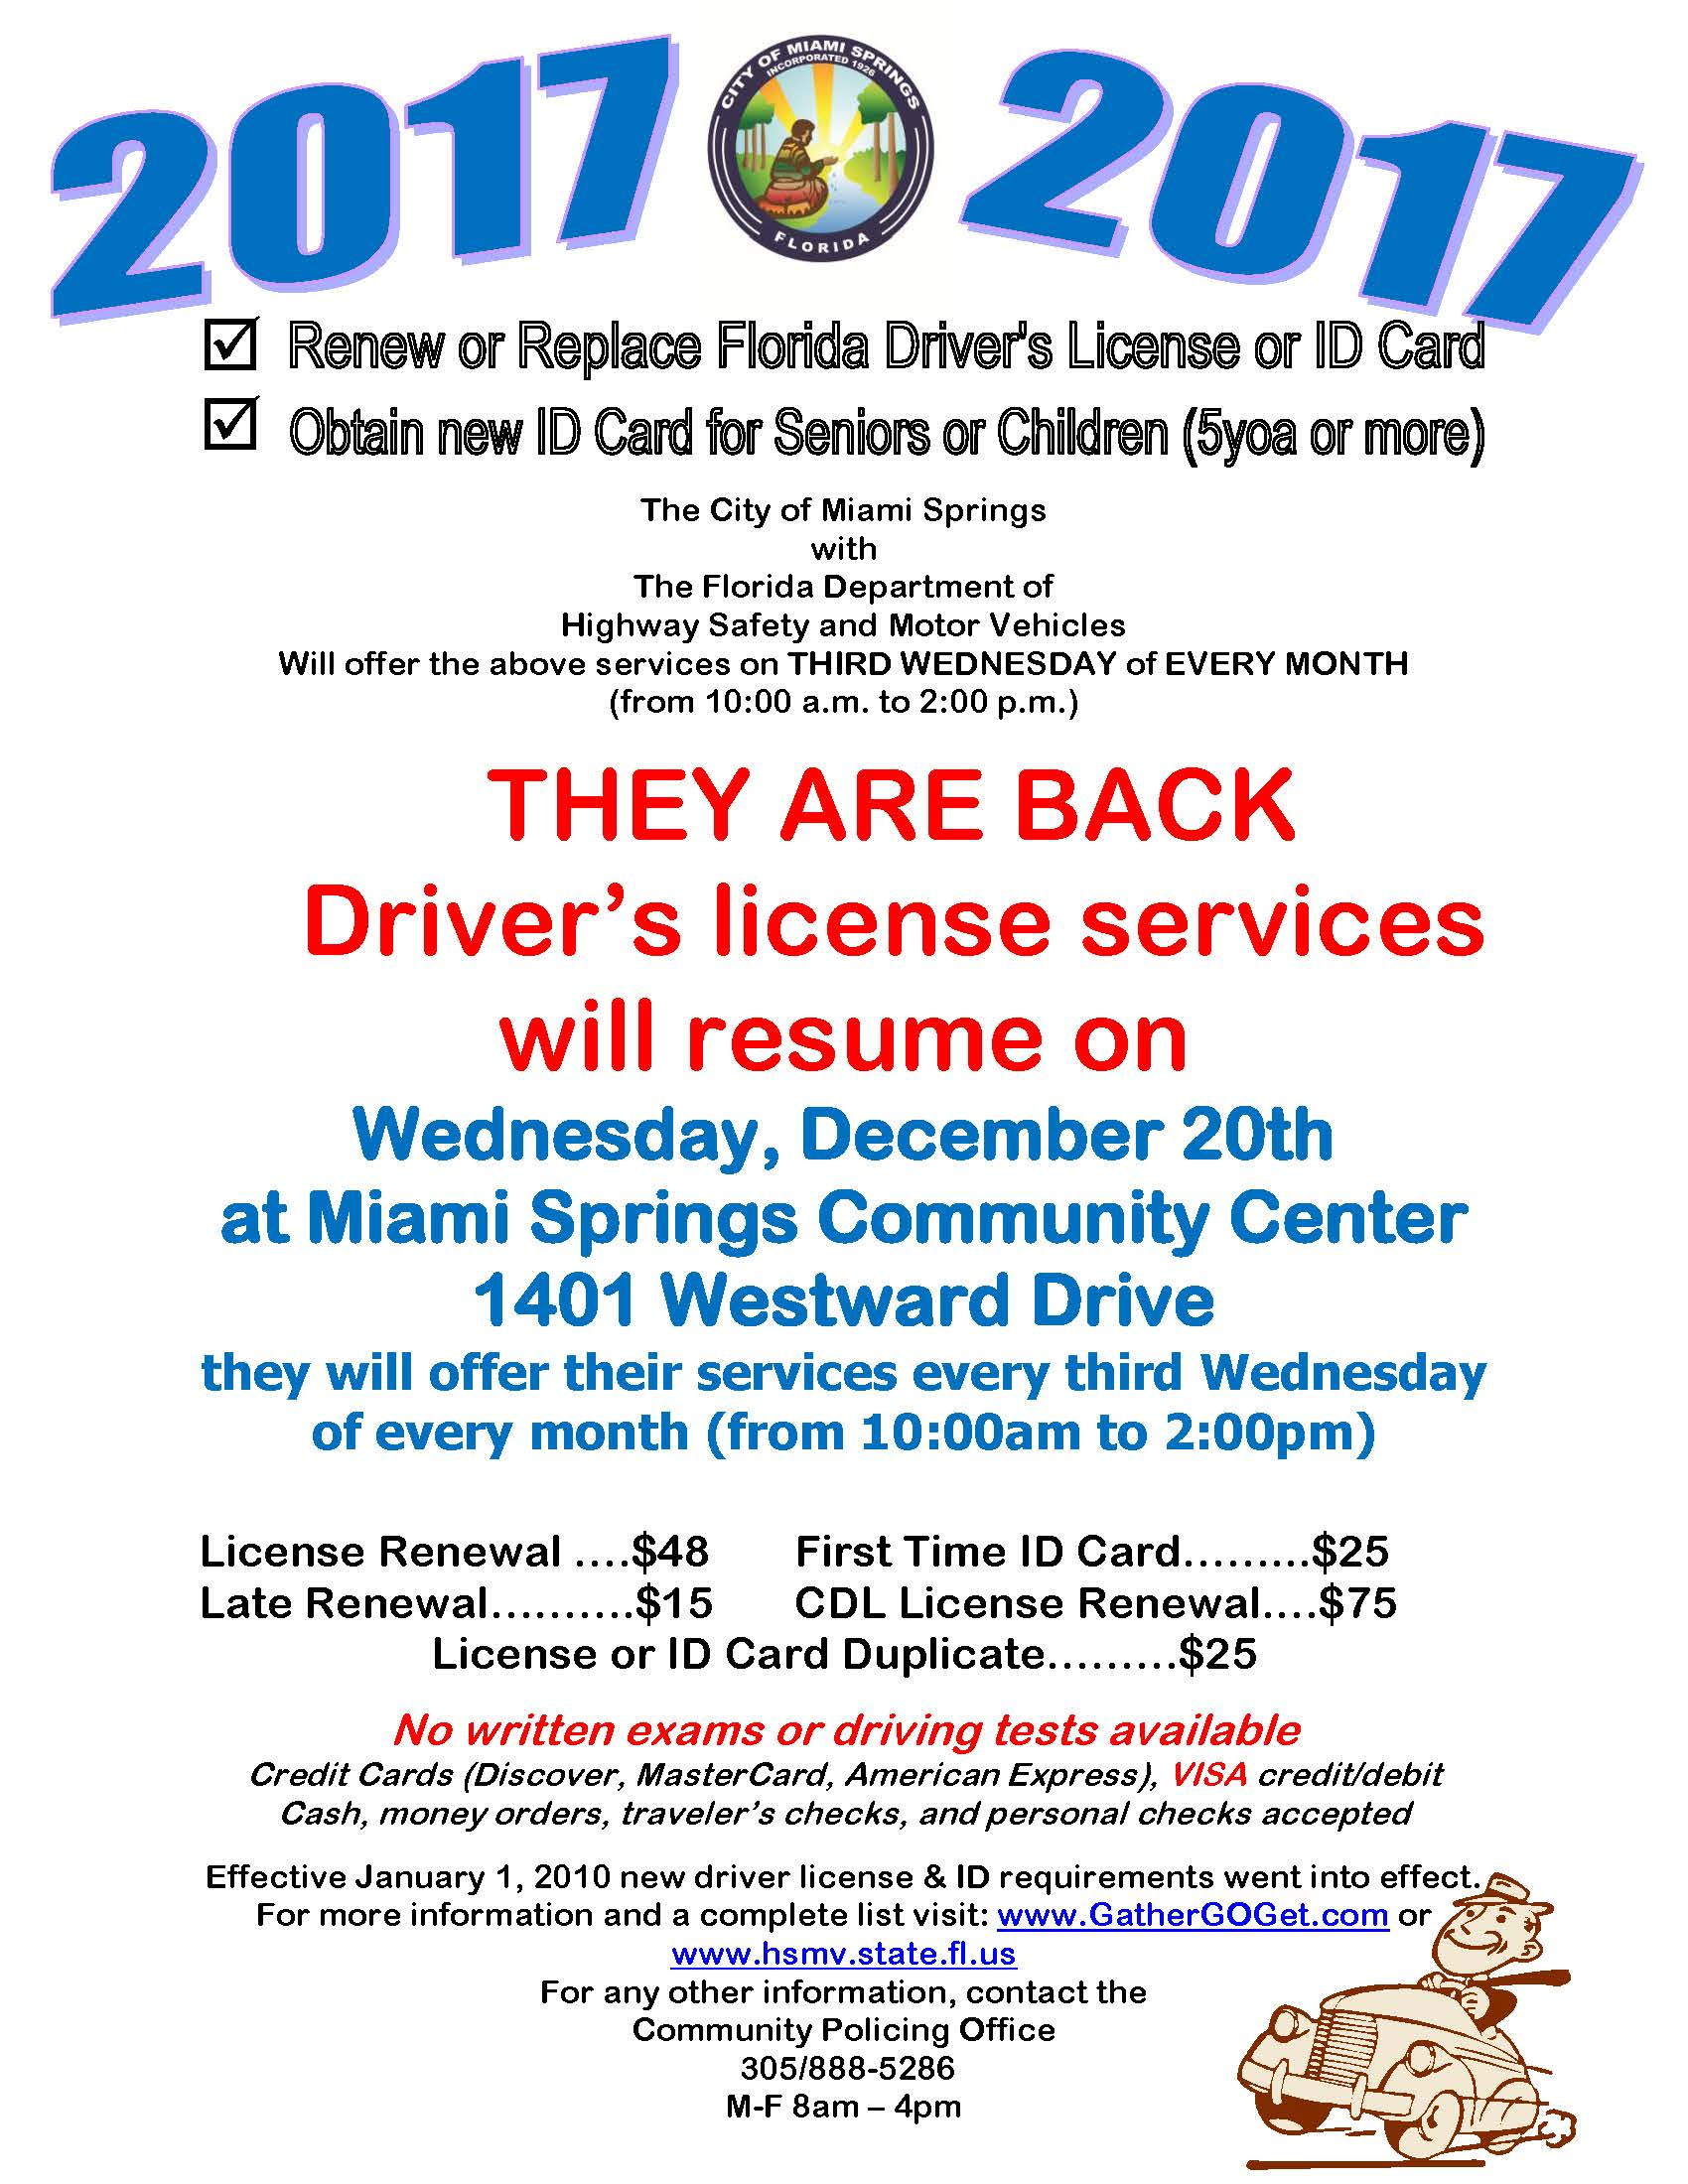 Renew my vehicle registration florida vehicle ideas for Lakeland motor vehicle and driver license services lakeland fl